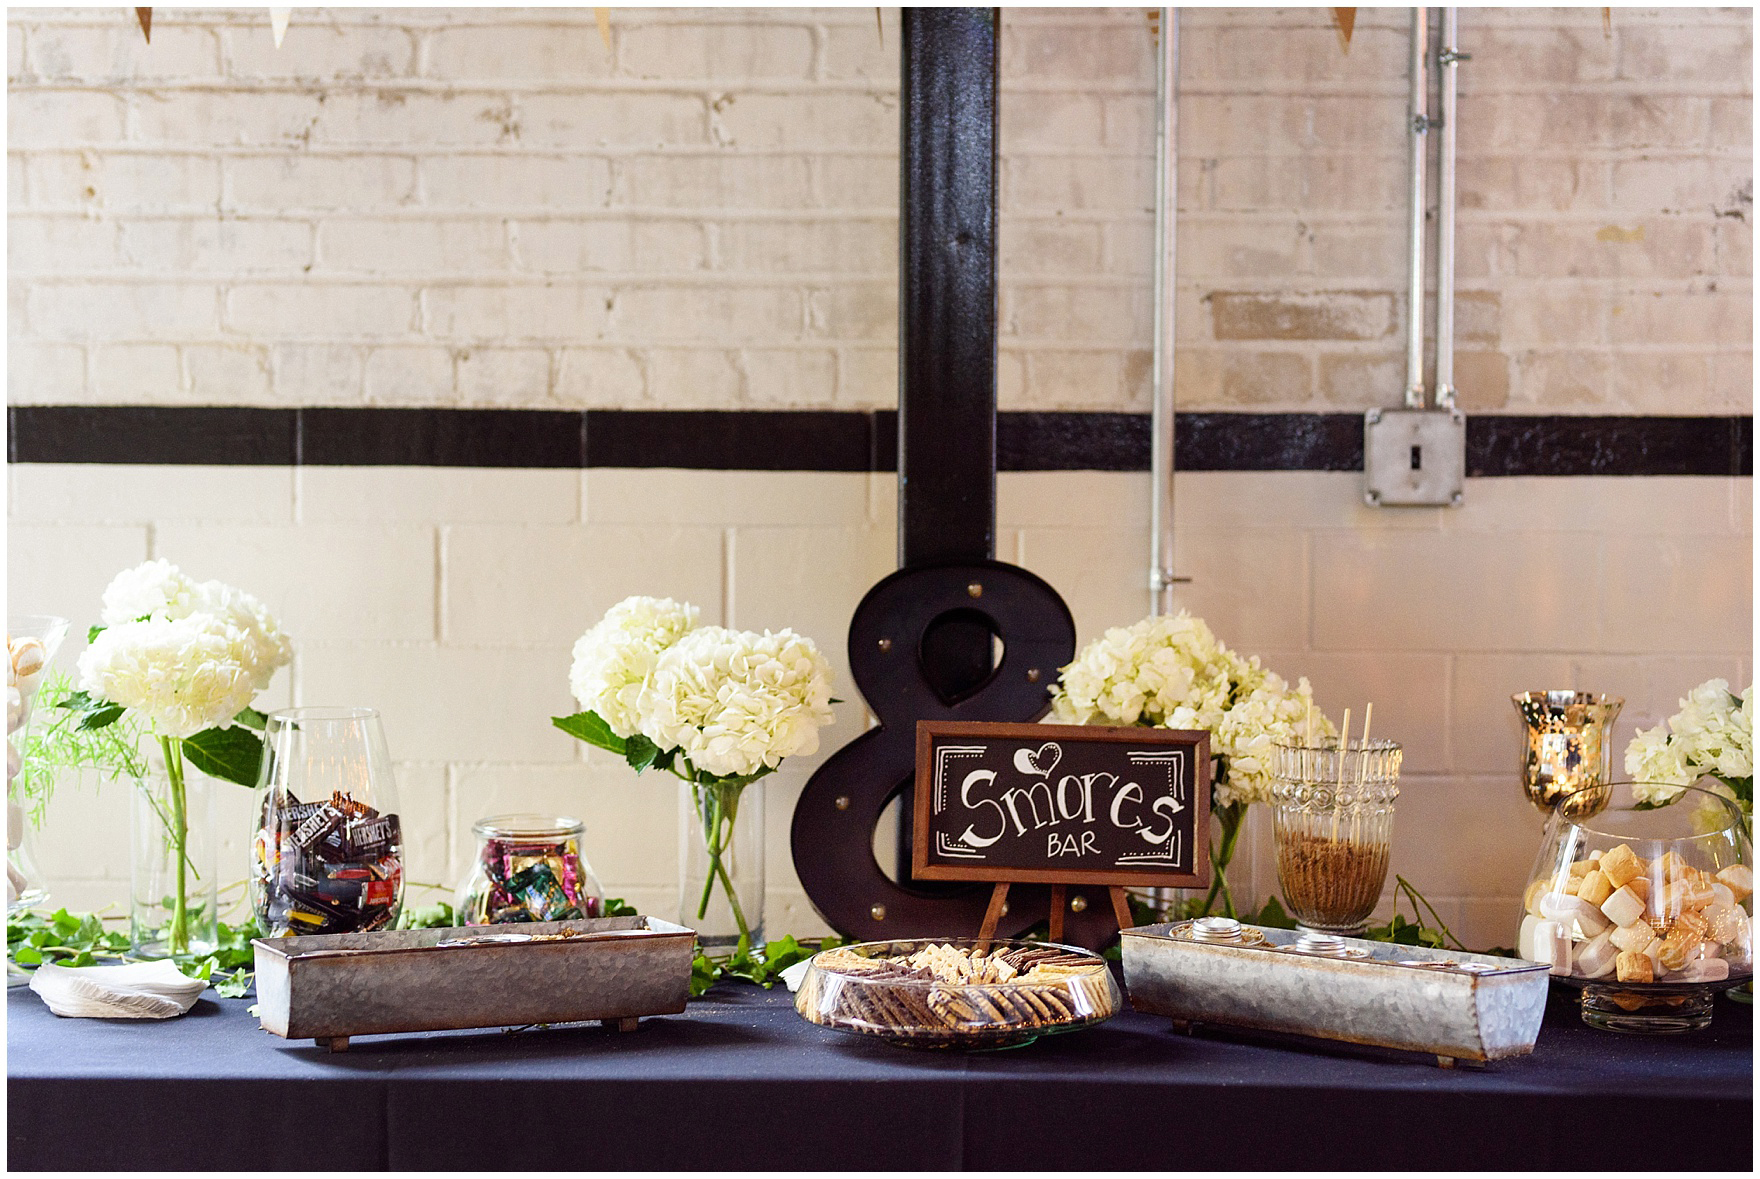 A smores table is set up for a wedding reception at The Brick in South Bend, following a University of Notre Dame wedding.